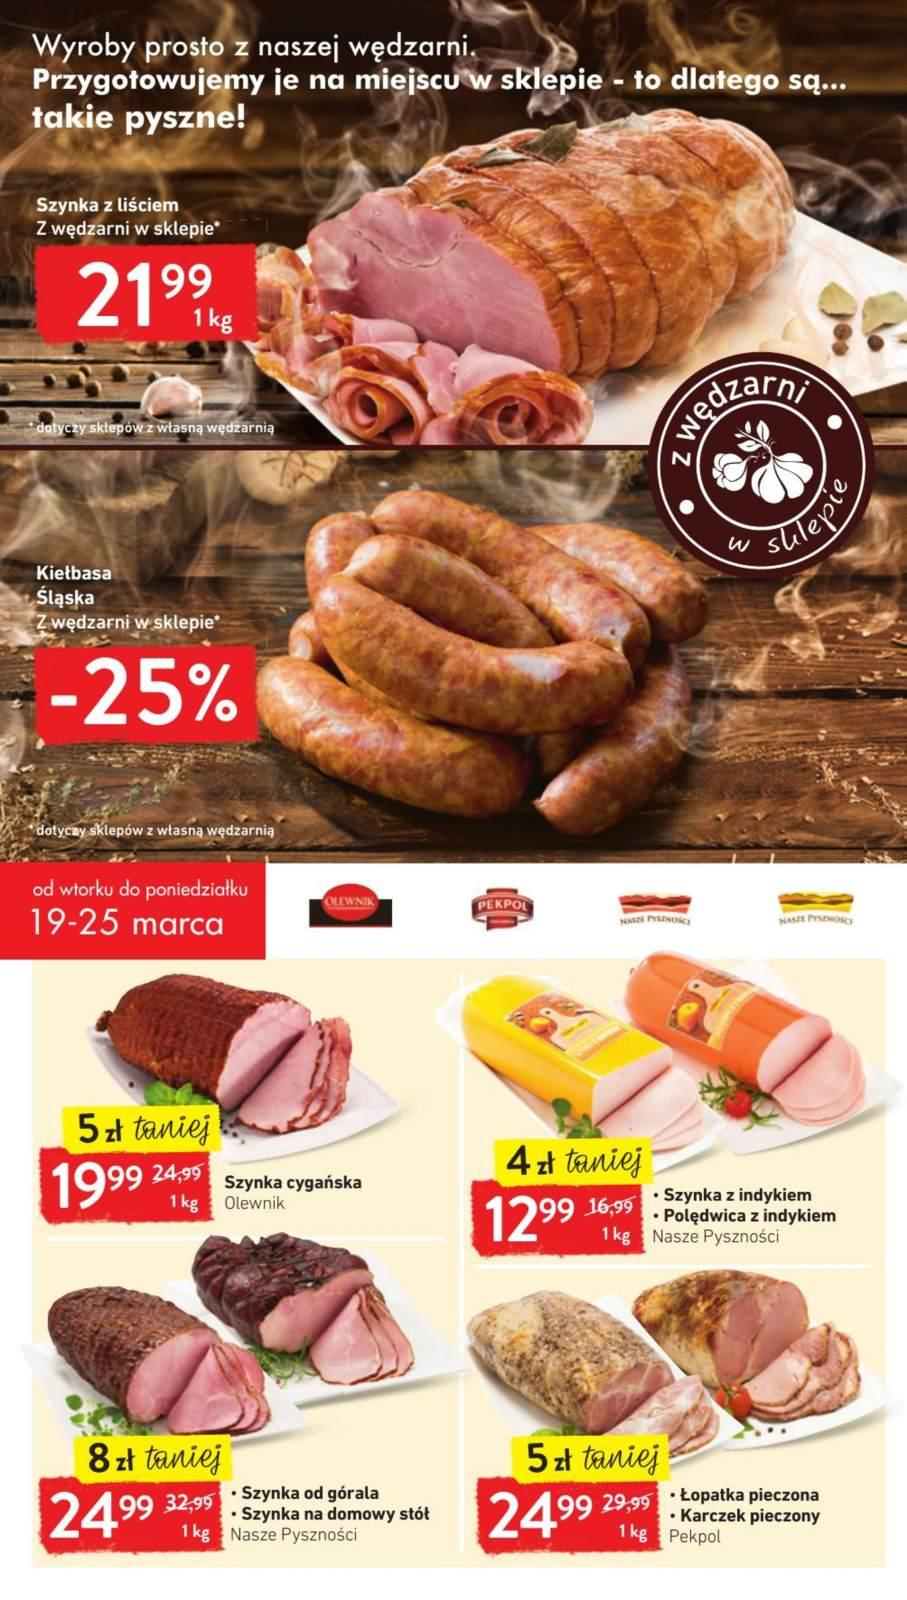 Gazetka promocyjna Intermarche do 25/03/2019 str.8